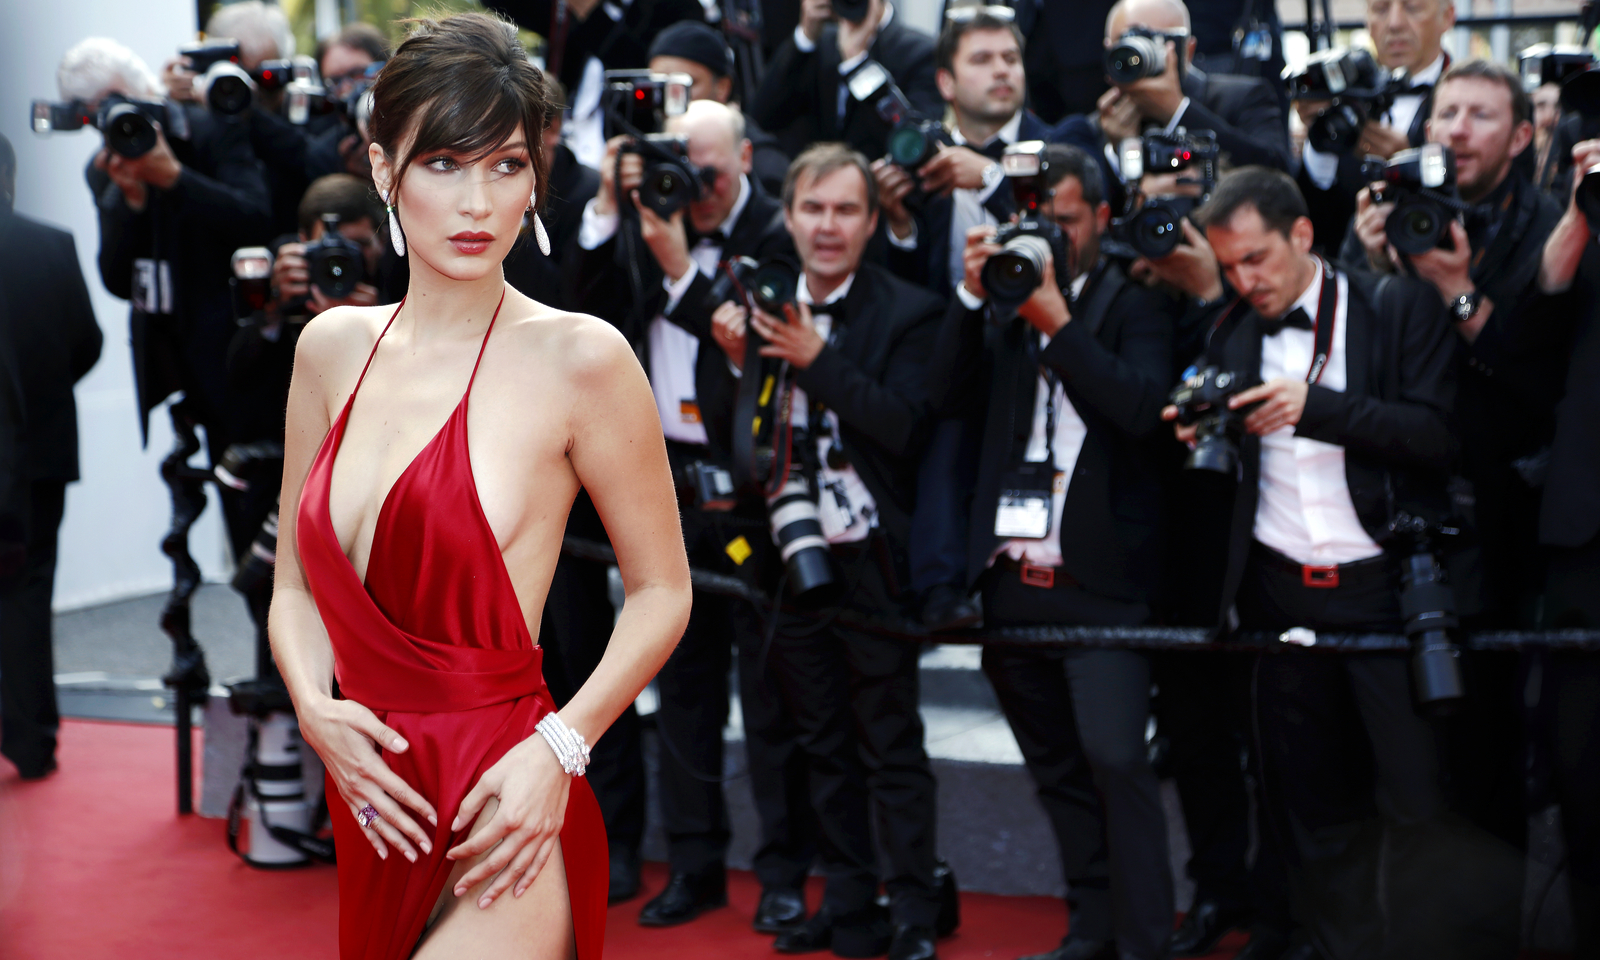 10 Cruelty-Free Tanning Products That Will Make You Glow Like Bella Hadid